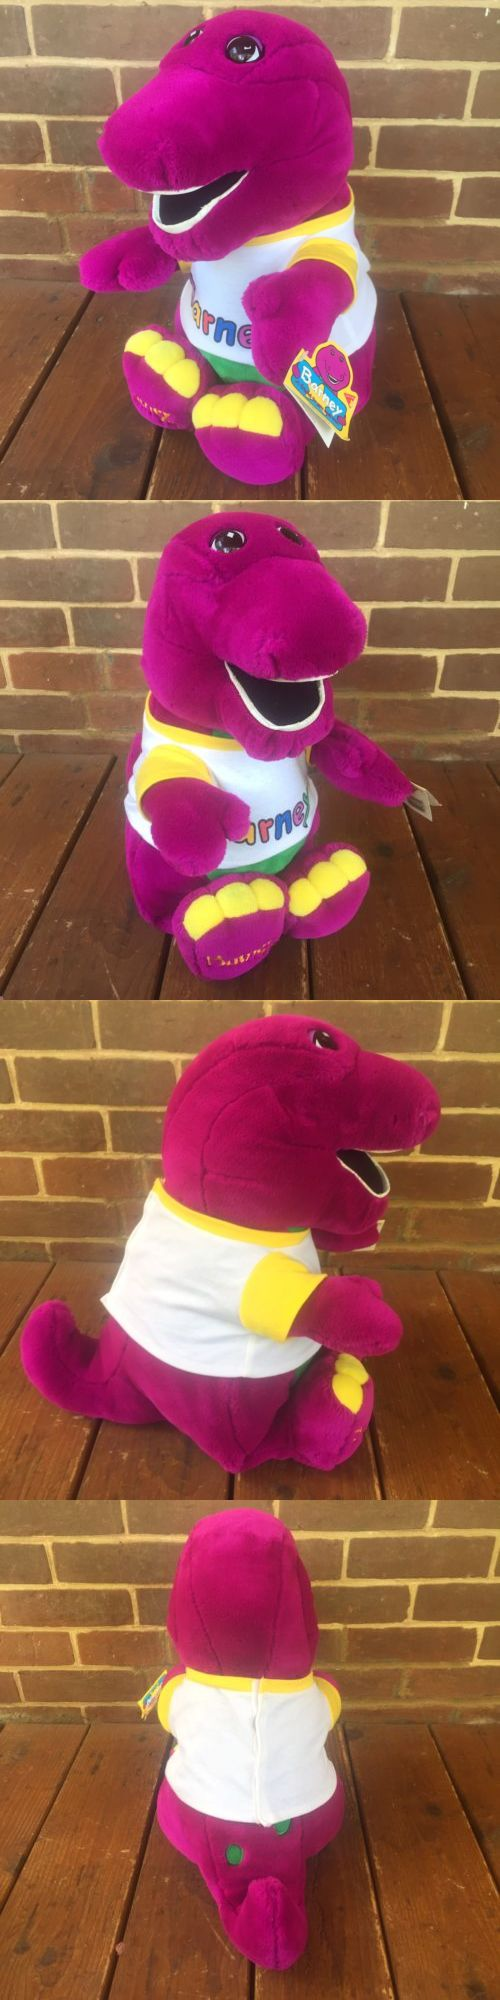 Barney 2625: Vintage Barney The Purple Dinosaur Dakin The Lyons Group 20 Plush Nwt New 1992 -> BUY IT NOW ONLY: $135 on eBay!